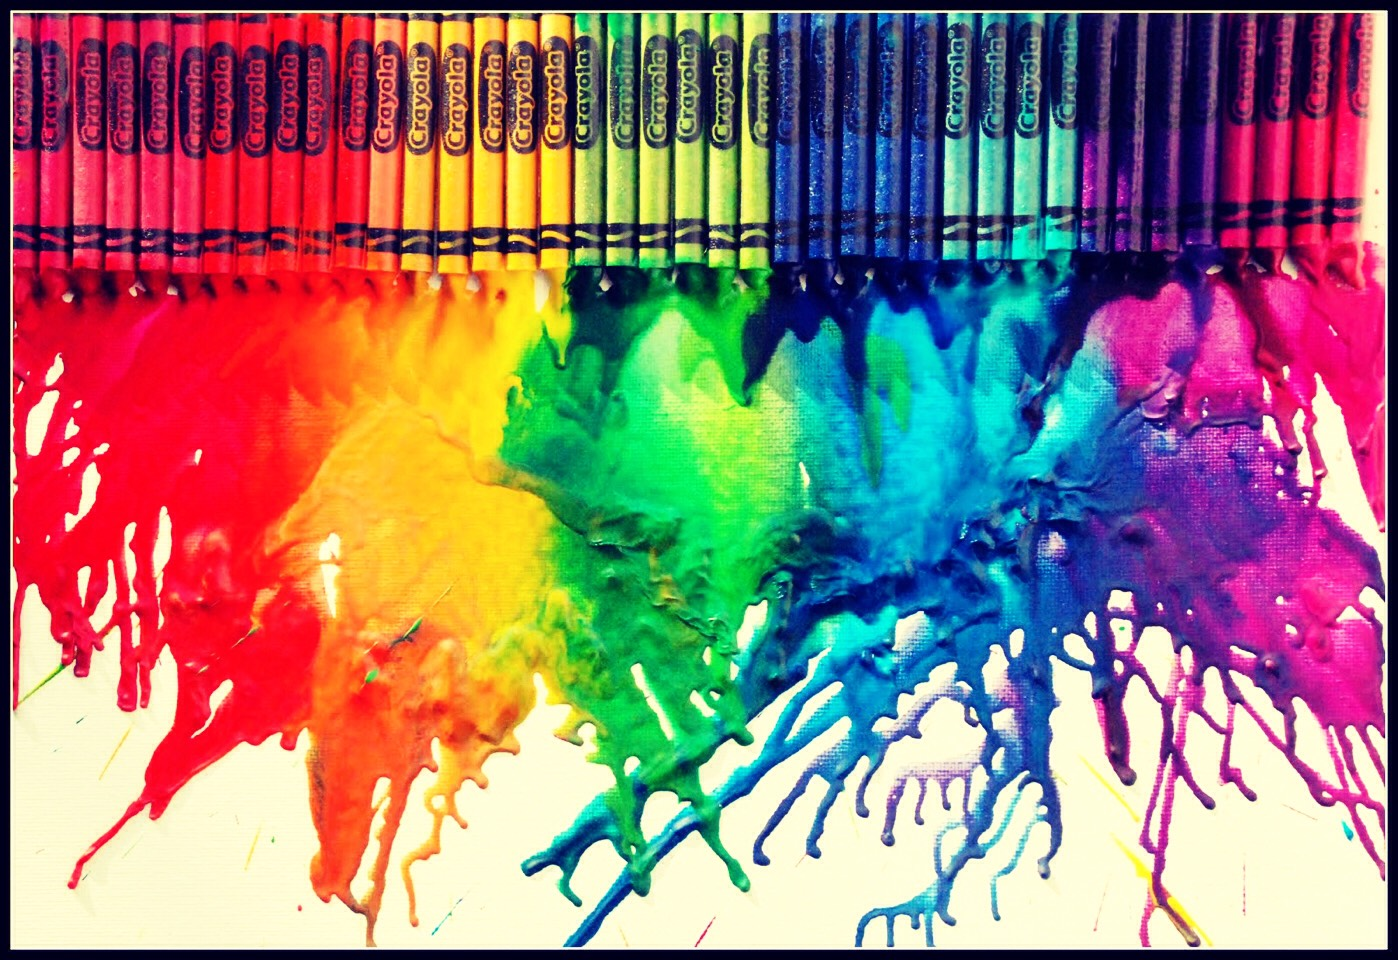 Keep melting the crayons and rinsing it out with every color  once you put the first layer put the  candle in the middle and wait until it harden then keep applying crayons